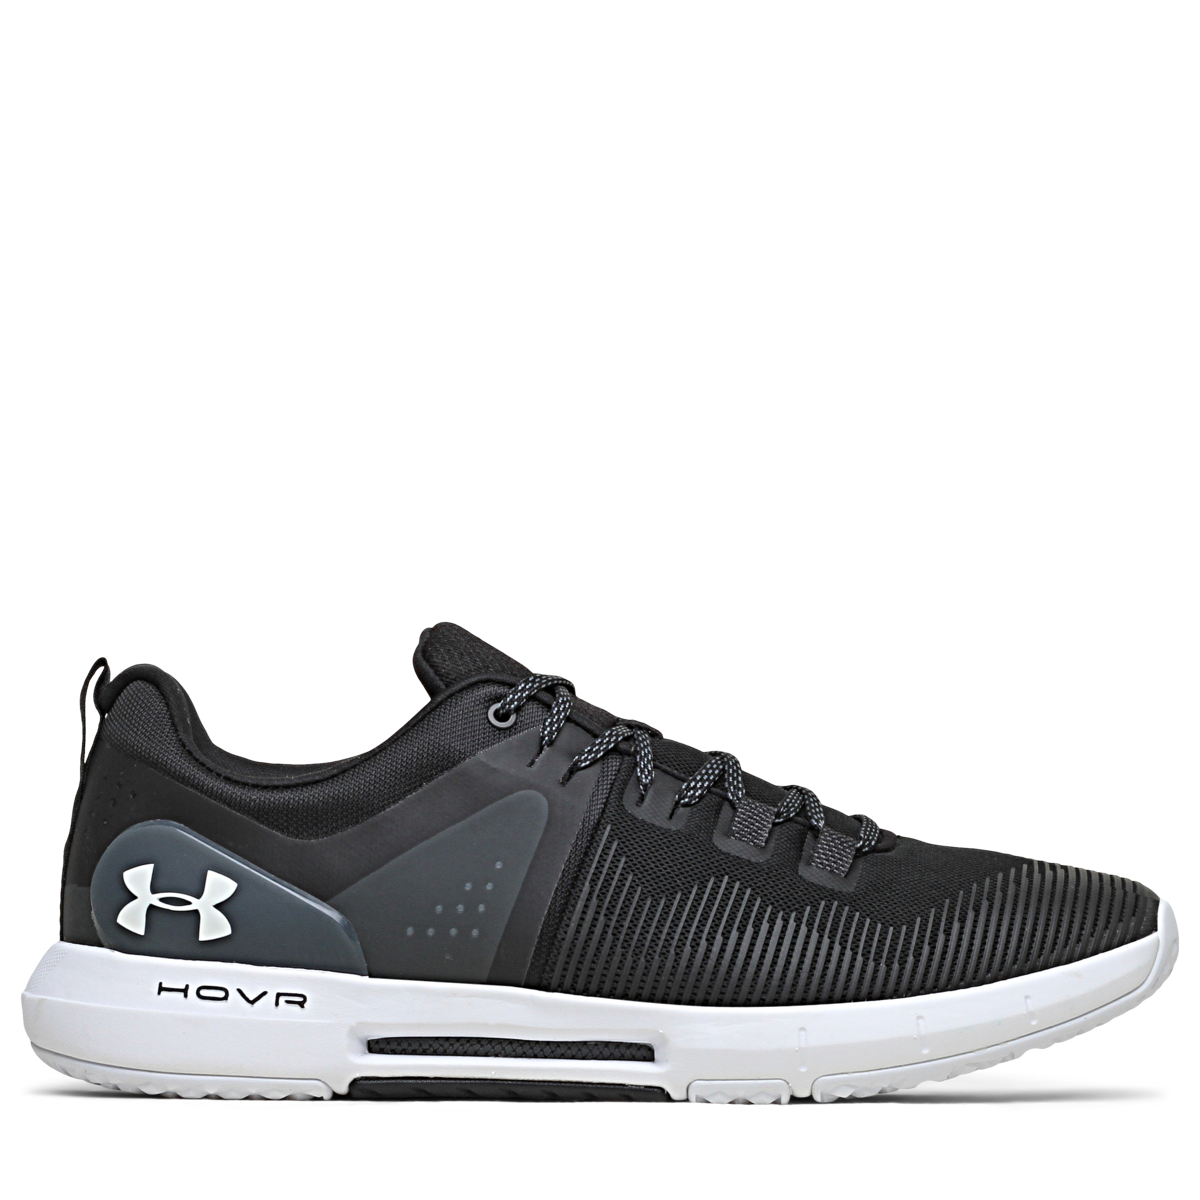 Under Armour - HOVR Rise - Sort - Herre